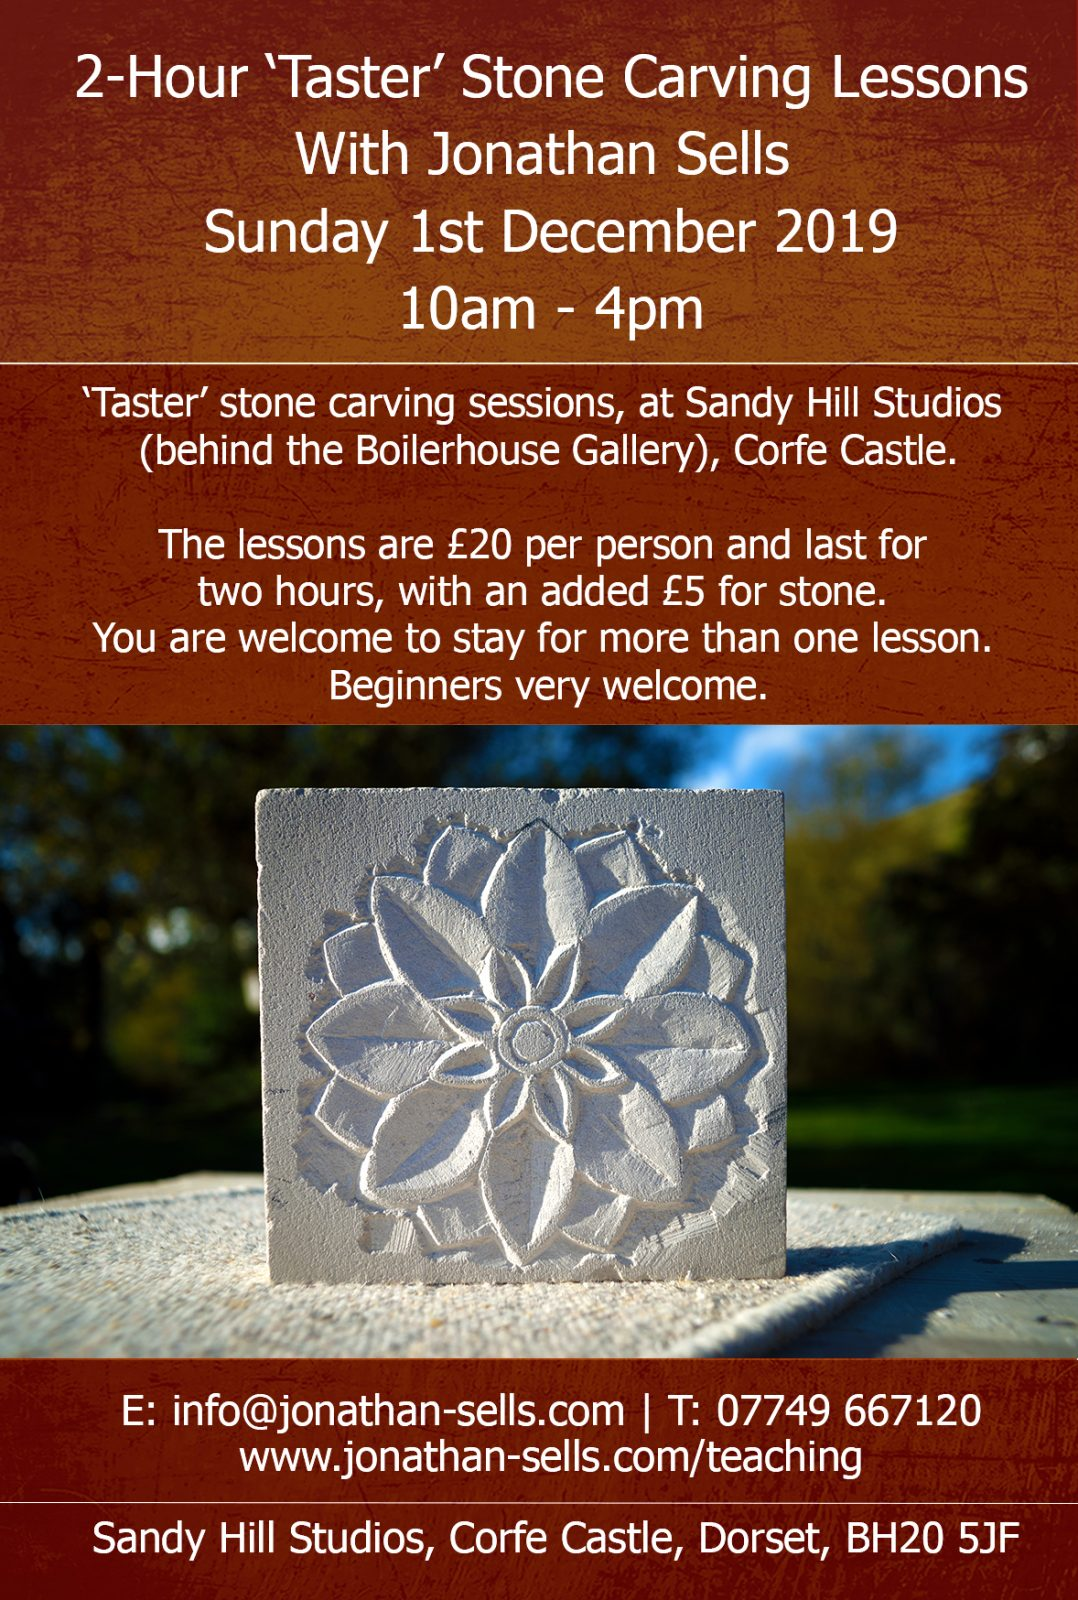 Stone carving sessions, Corfe Castle - Sunday 1st December 2019.